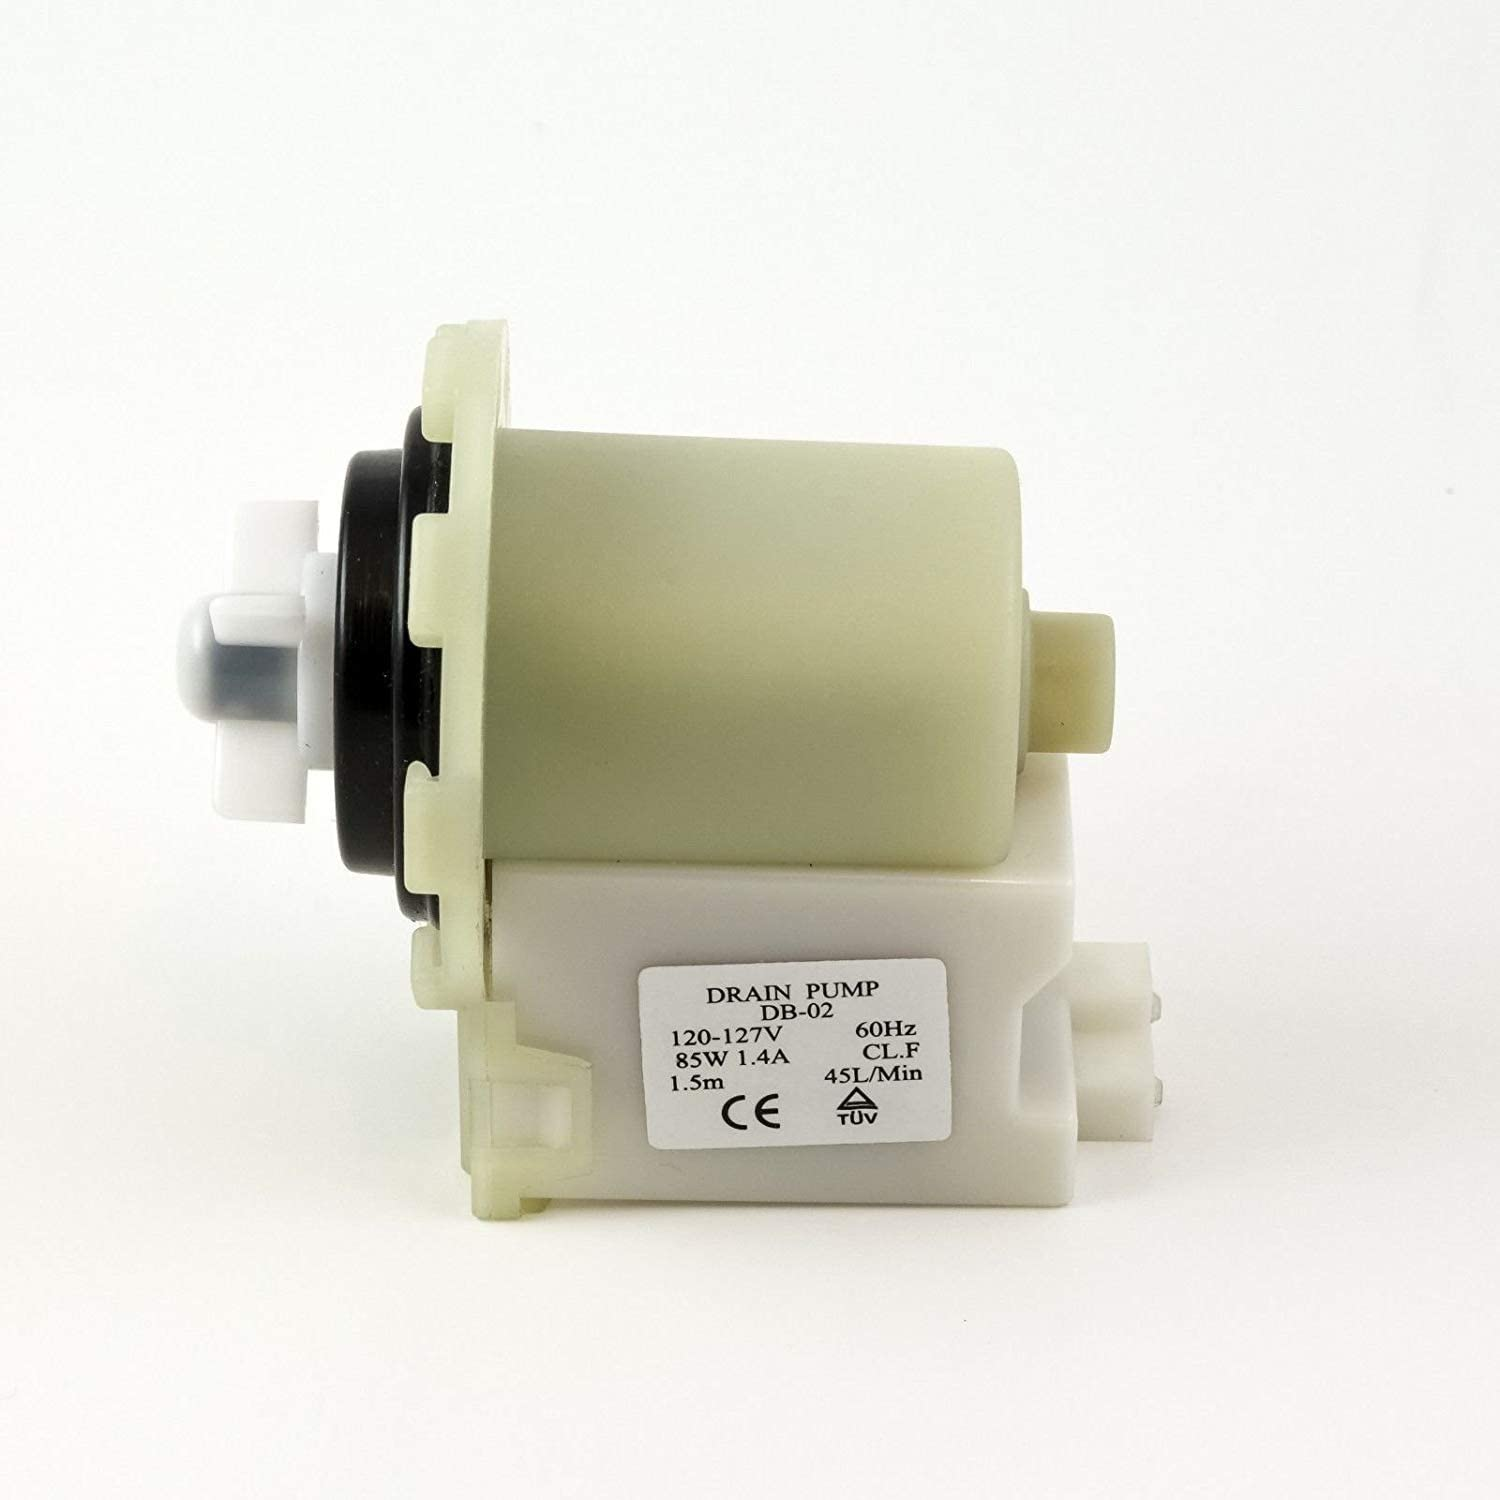 NEW Replacement Drain Pump for KENMORE WHIRLPOOL 8540024 W10130913 W10117829